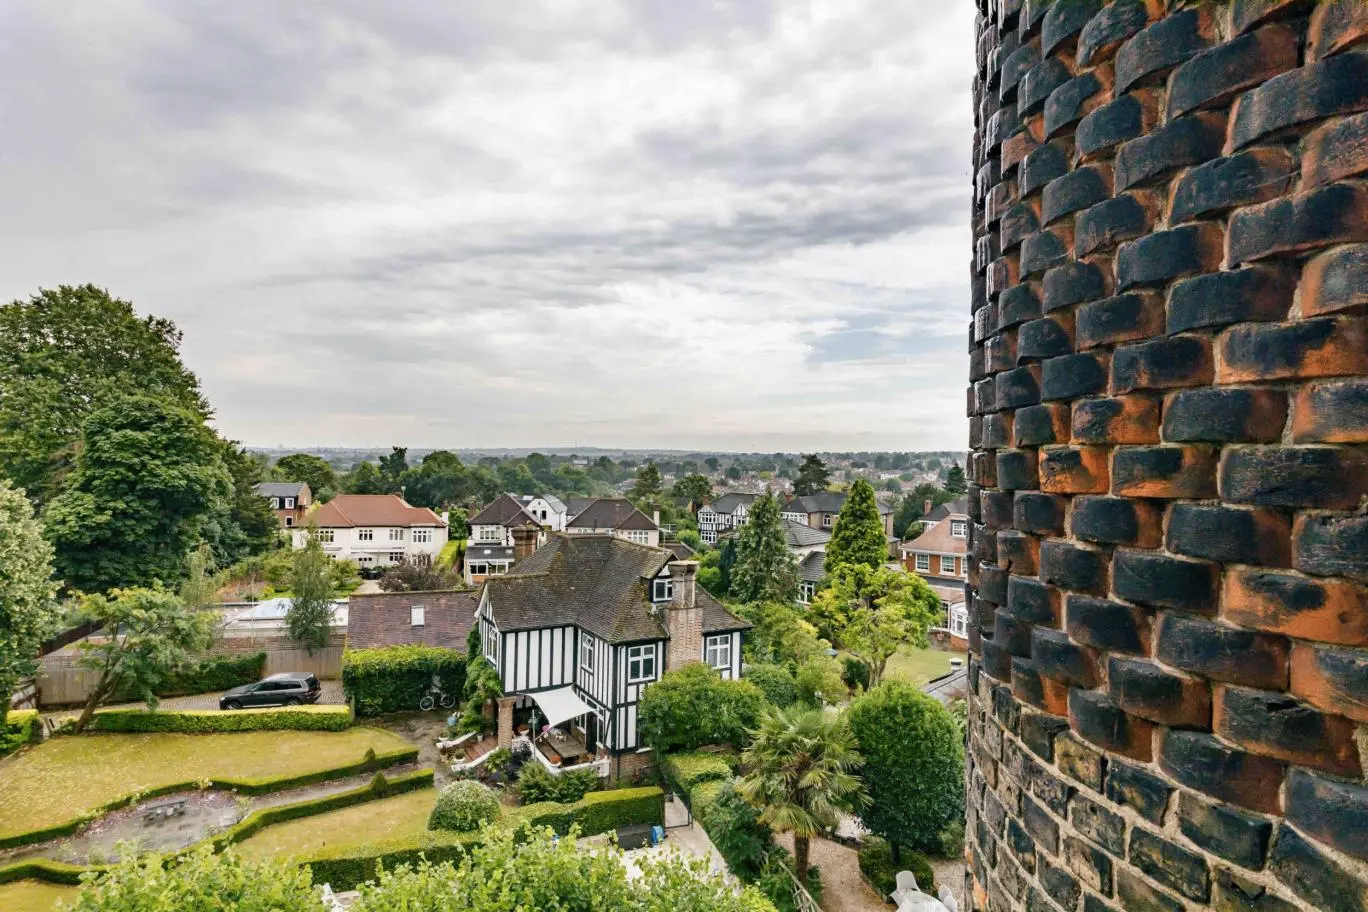 A converted water tower is for sale for the first time in 50 years in north London – but its 1970s interiors need a complete update.